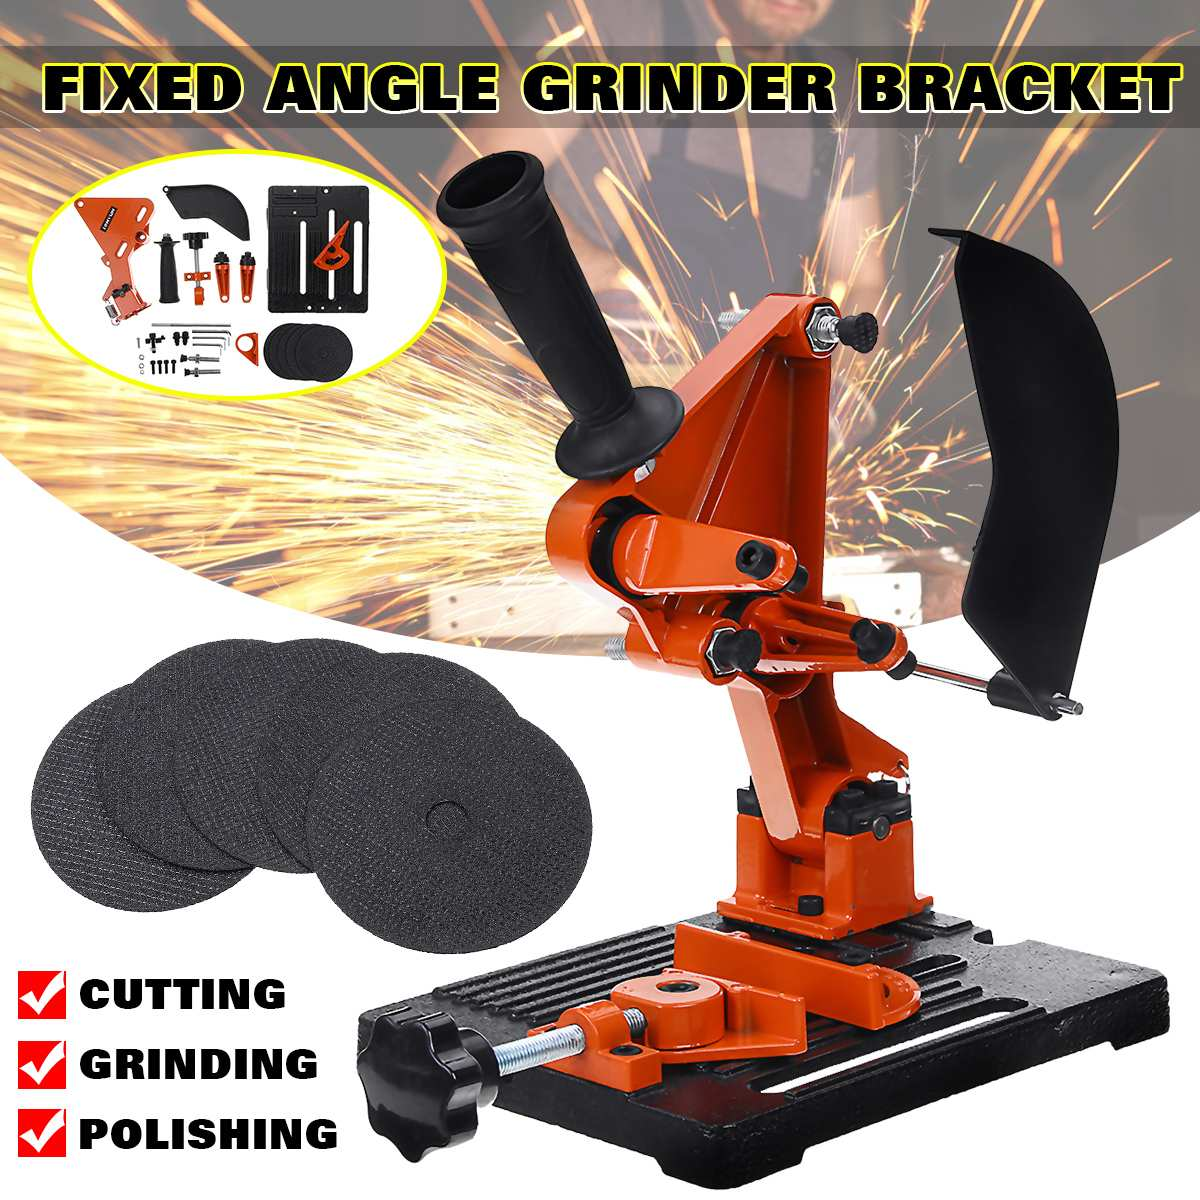 220V Universal Angle Grinder Stand Bracket Holder Multi-angle Adjustable Metal Cutting Machine Support Power Tools Accessories